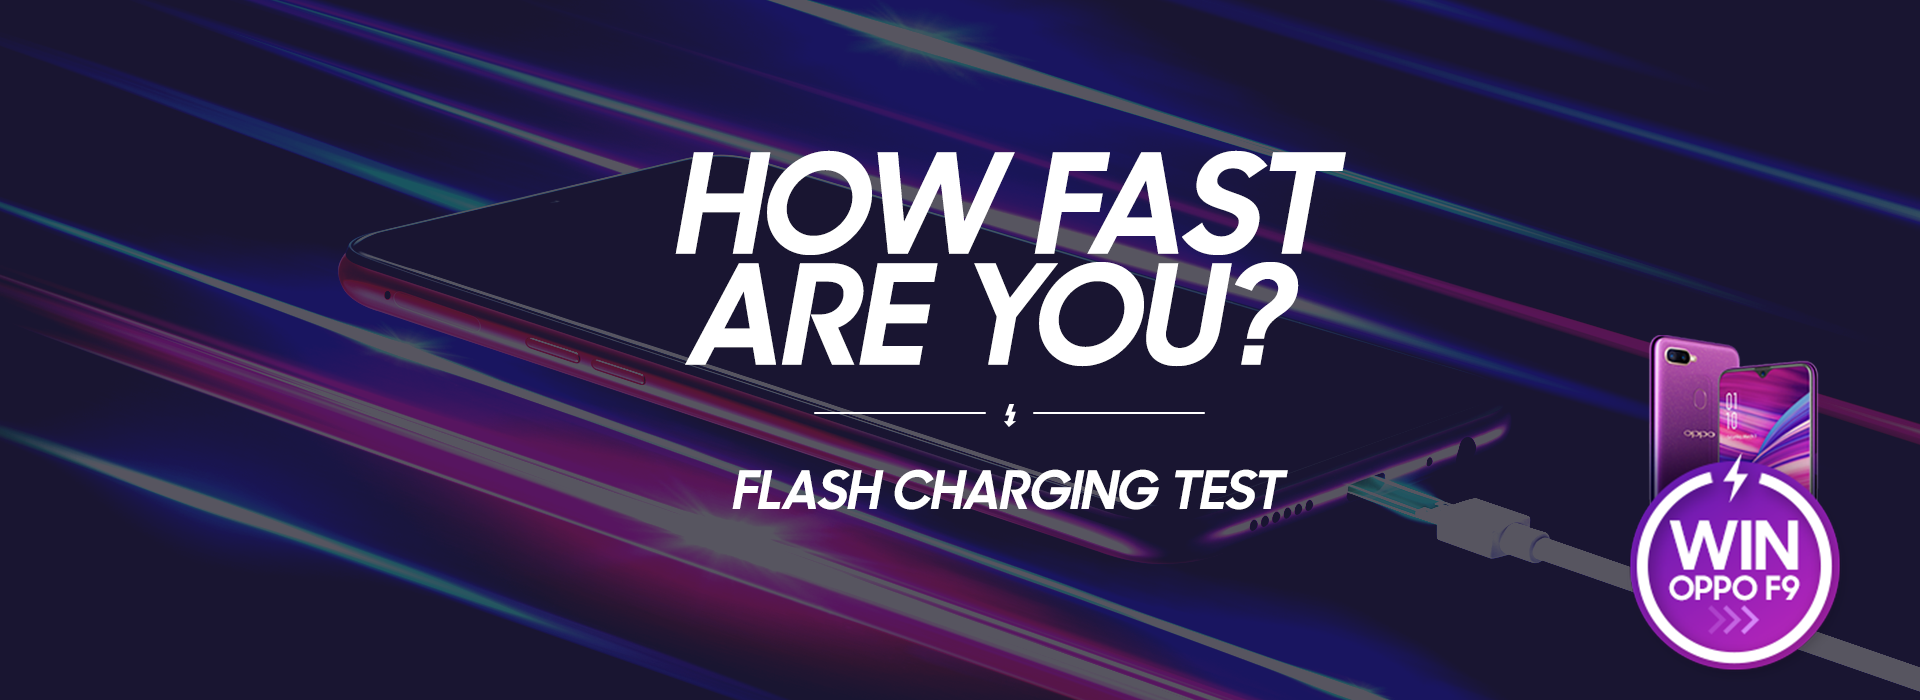 Oppo Mobile For Smartphones Accessories Indonesia F3 Citra Land Vooc Flash Charge Test